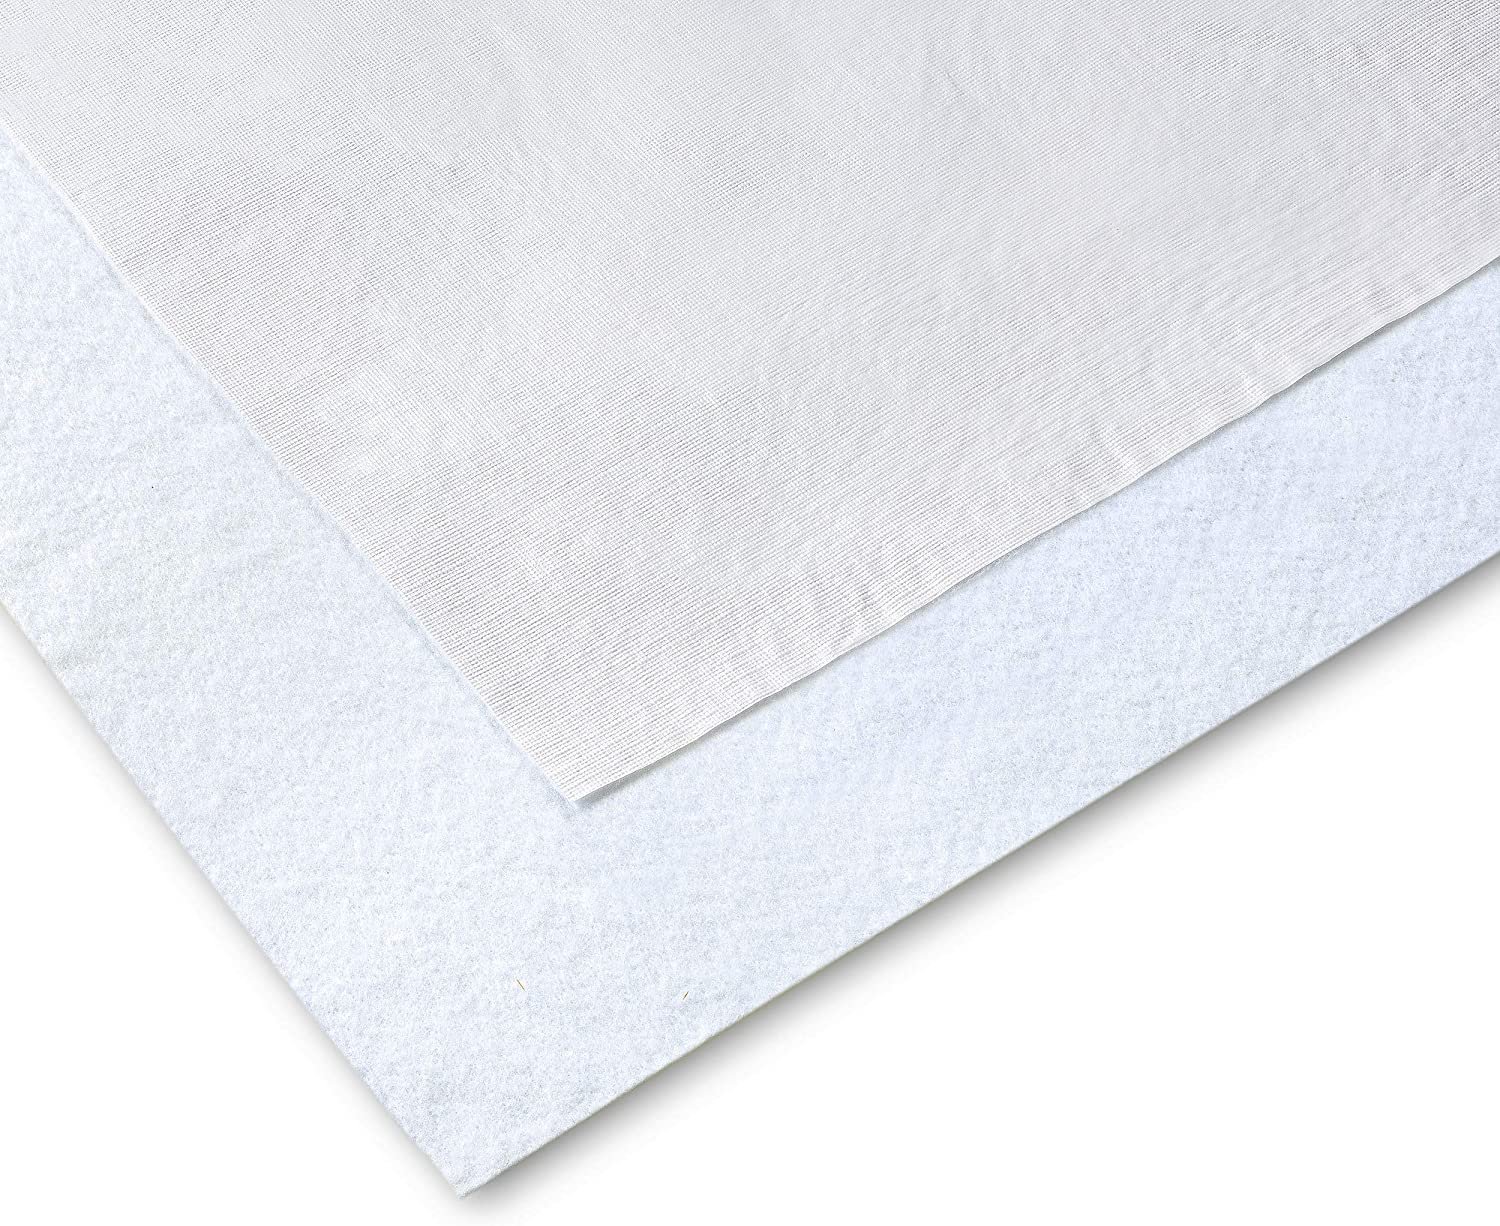 Sultan's Linens Extra Padding Table Pad Waterproof with Superior Protection (52 Inch x 104 Inch): Home & Kitchen